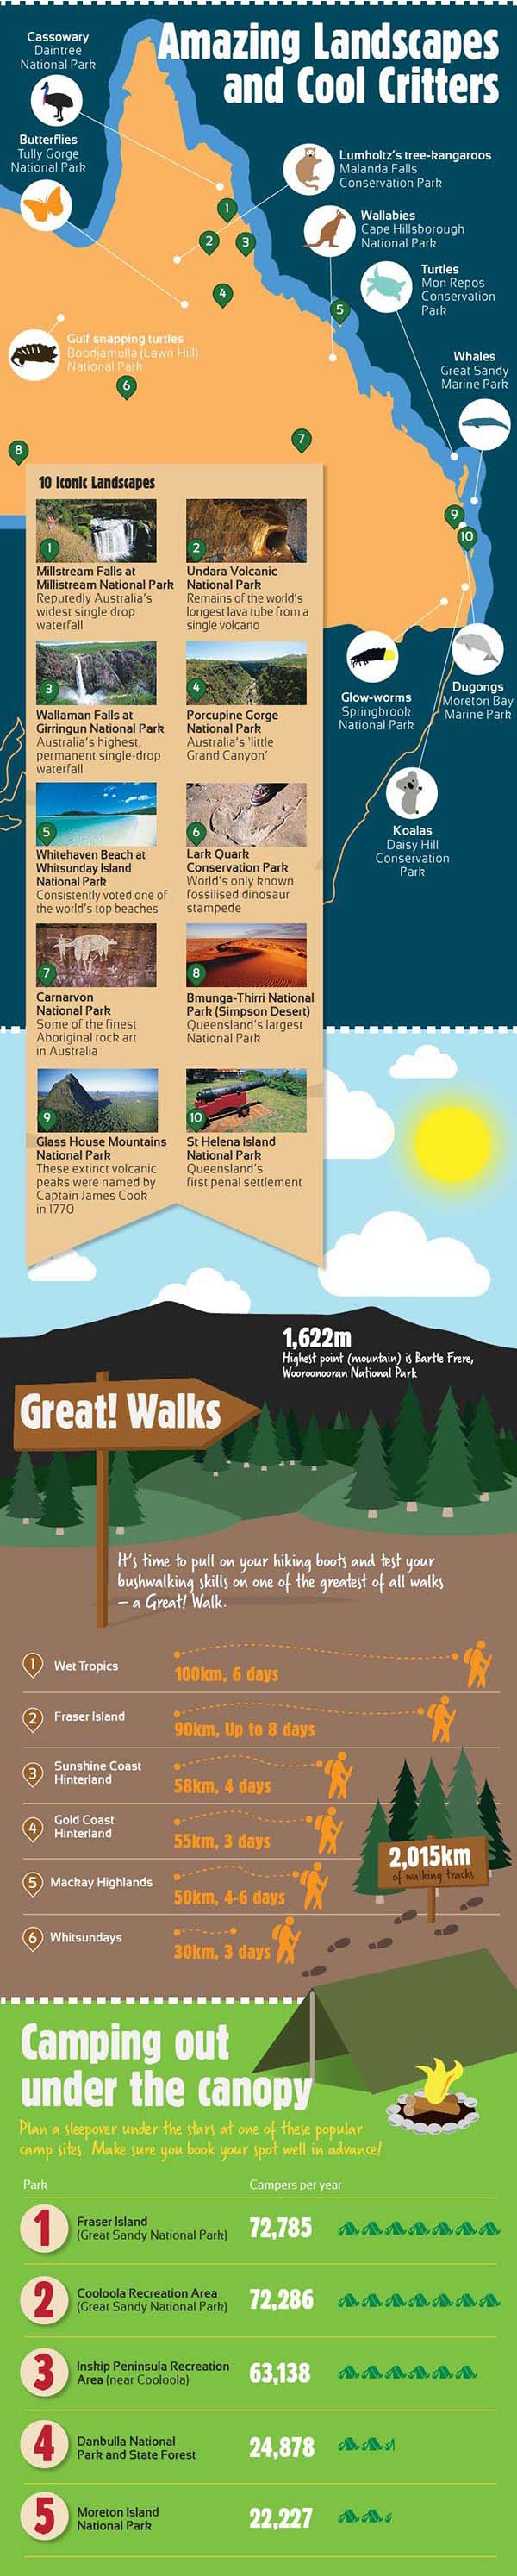 Infographic: Amazing Landscapes and Cool Critters